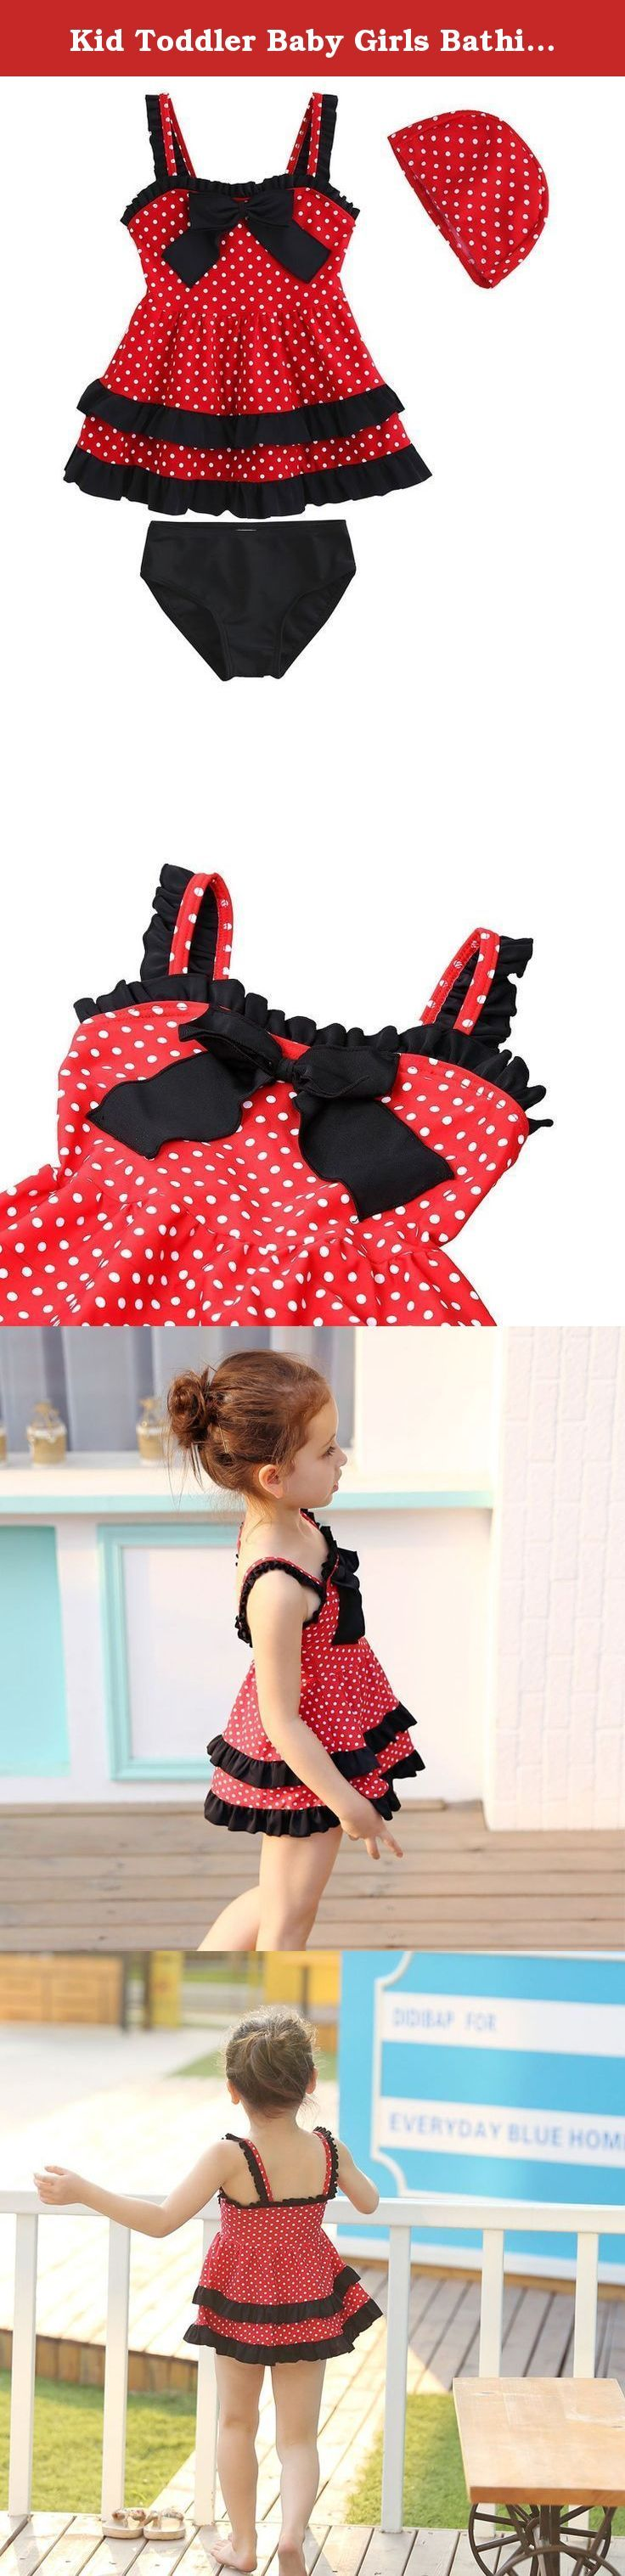 Kid Toddler Baby Girls Bathing Suit Lace Bow Dot Two Piece Swimsuit Swimwear 3. 7-15 days to arrive.